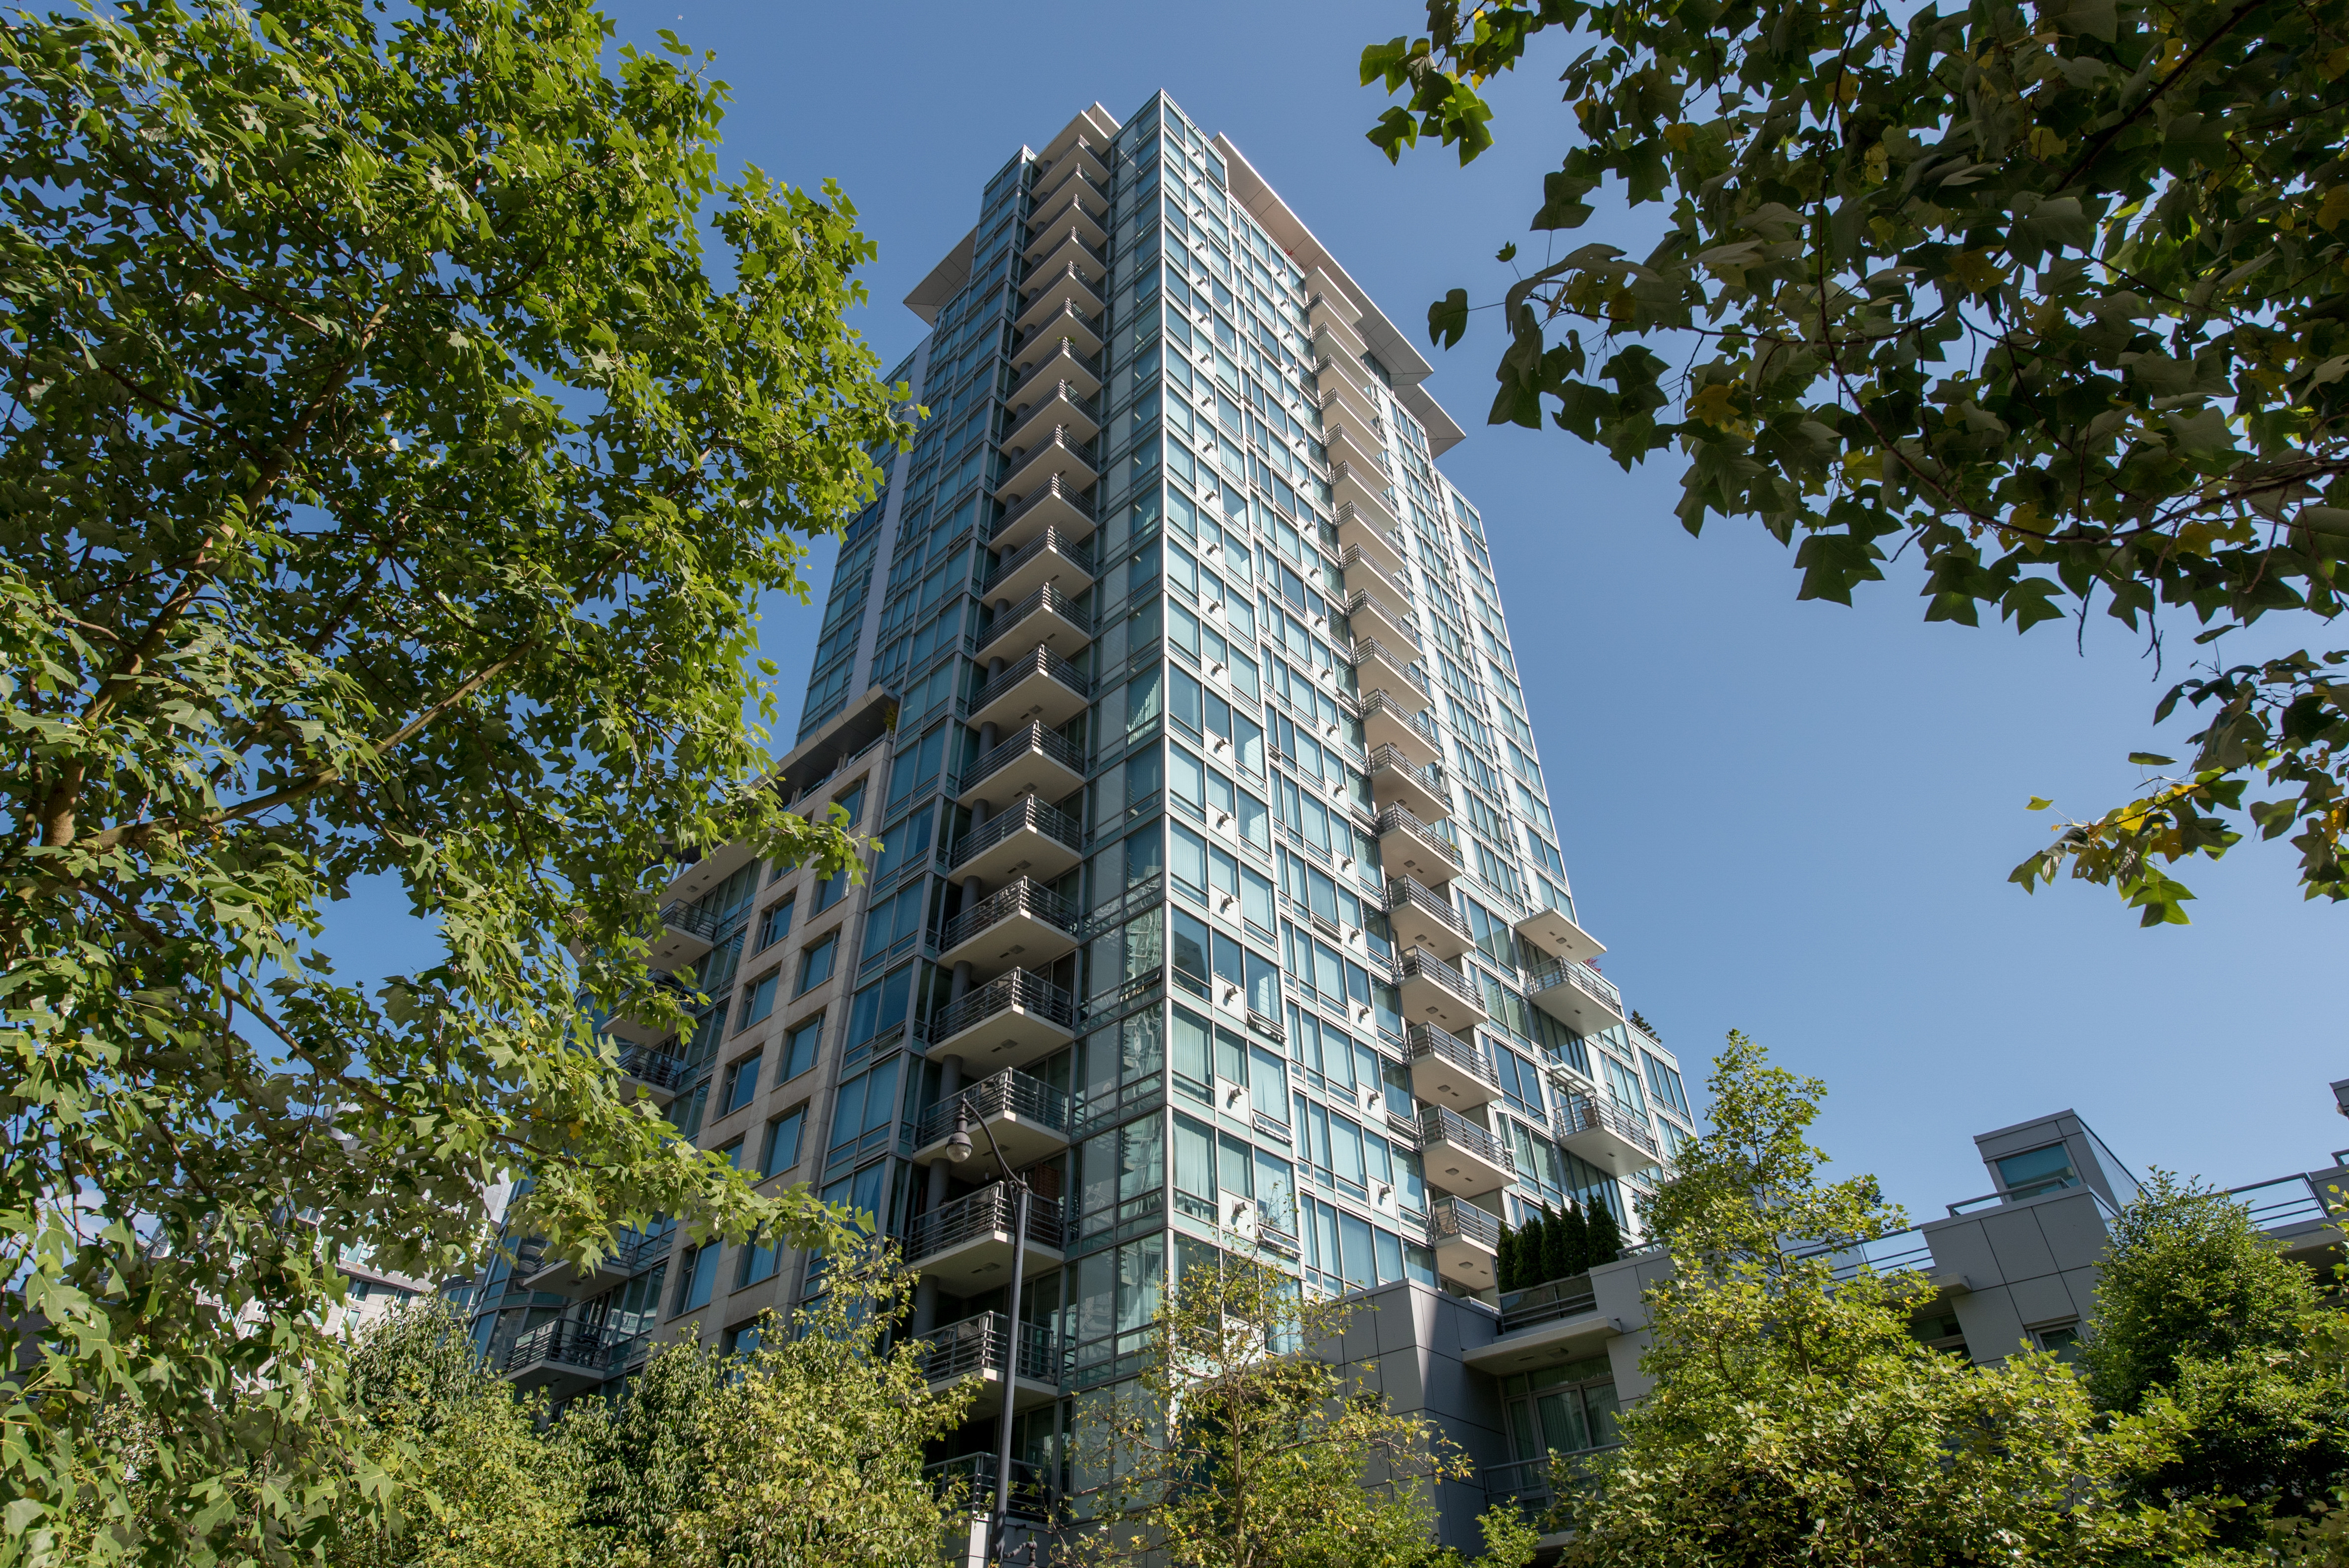 Coal Harbour Condo for sale: Cascina at Waterfront Place 2 bedroom  Stainless Steel Appliances, Granite Countertop, Plush Carpet 1,435 sq.ft. (Listed 2015-07-05)